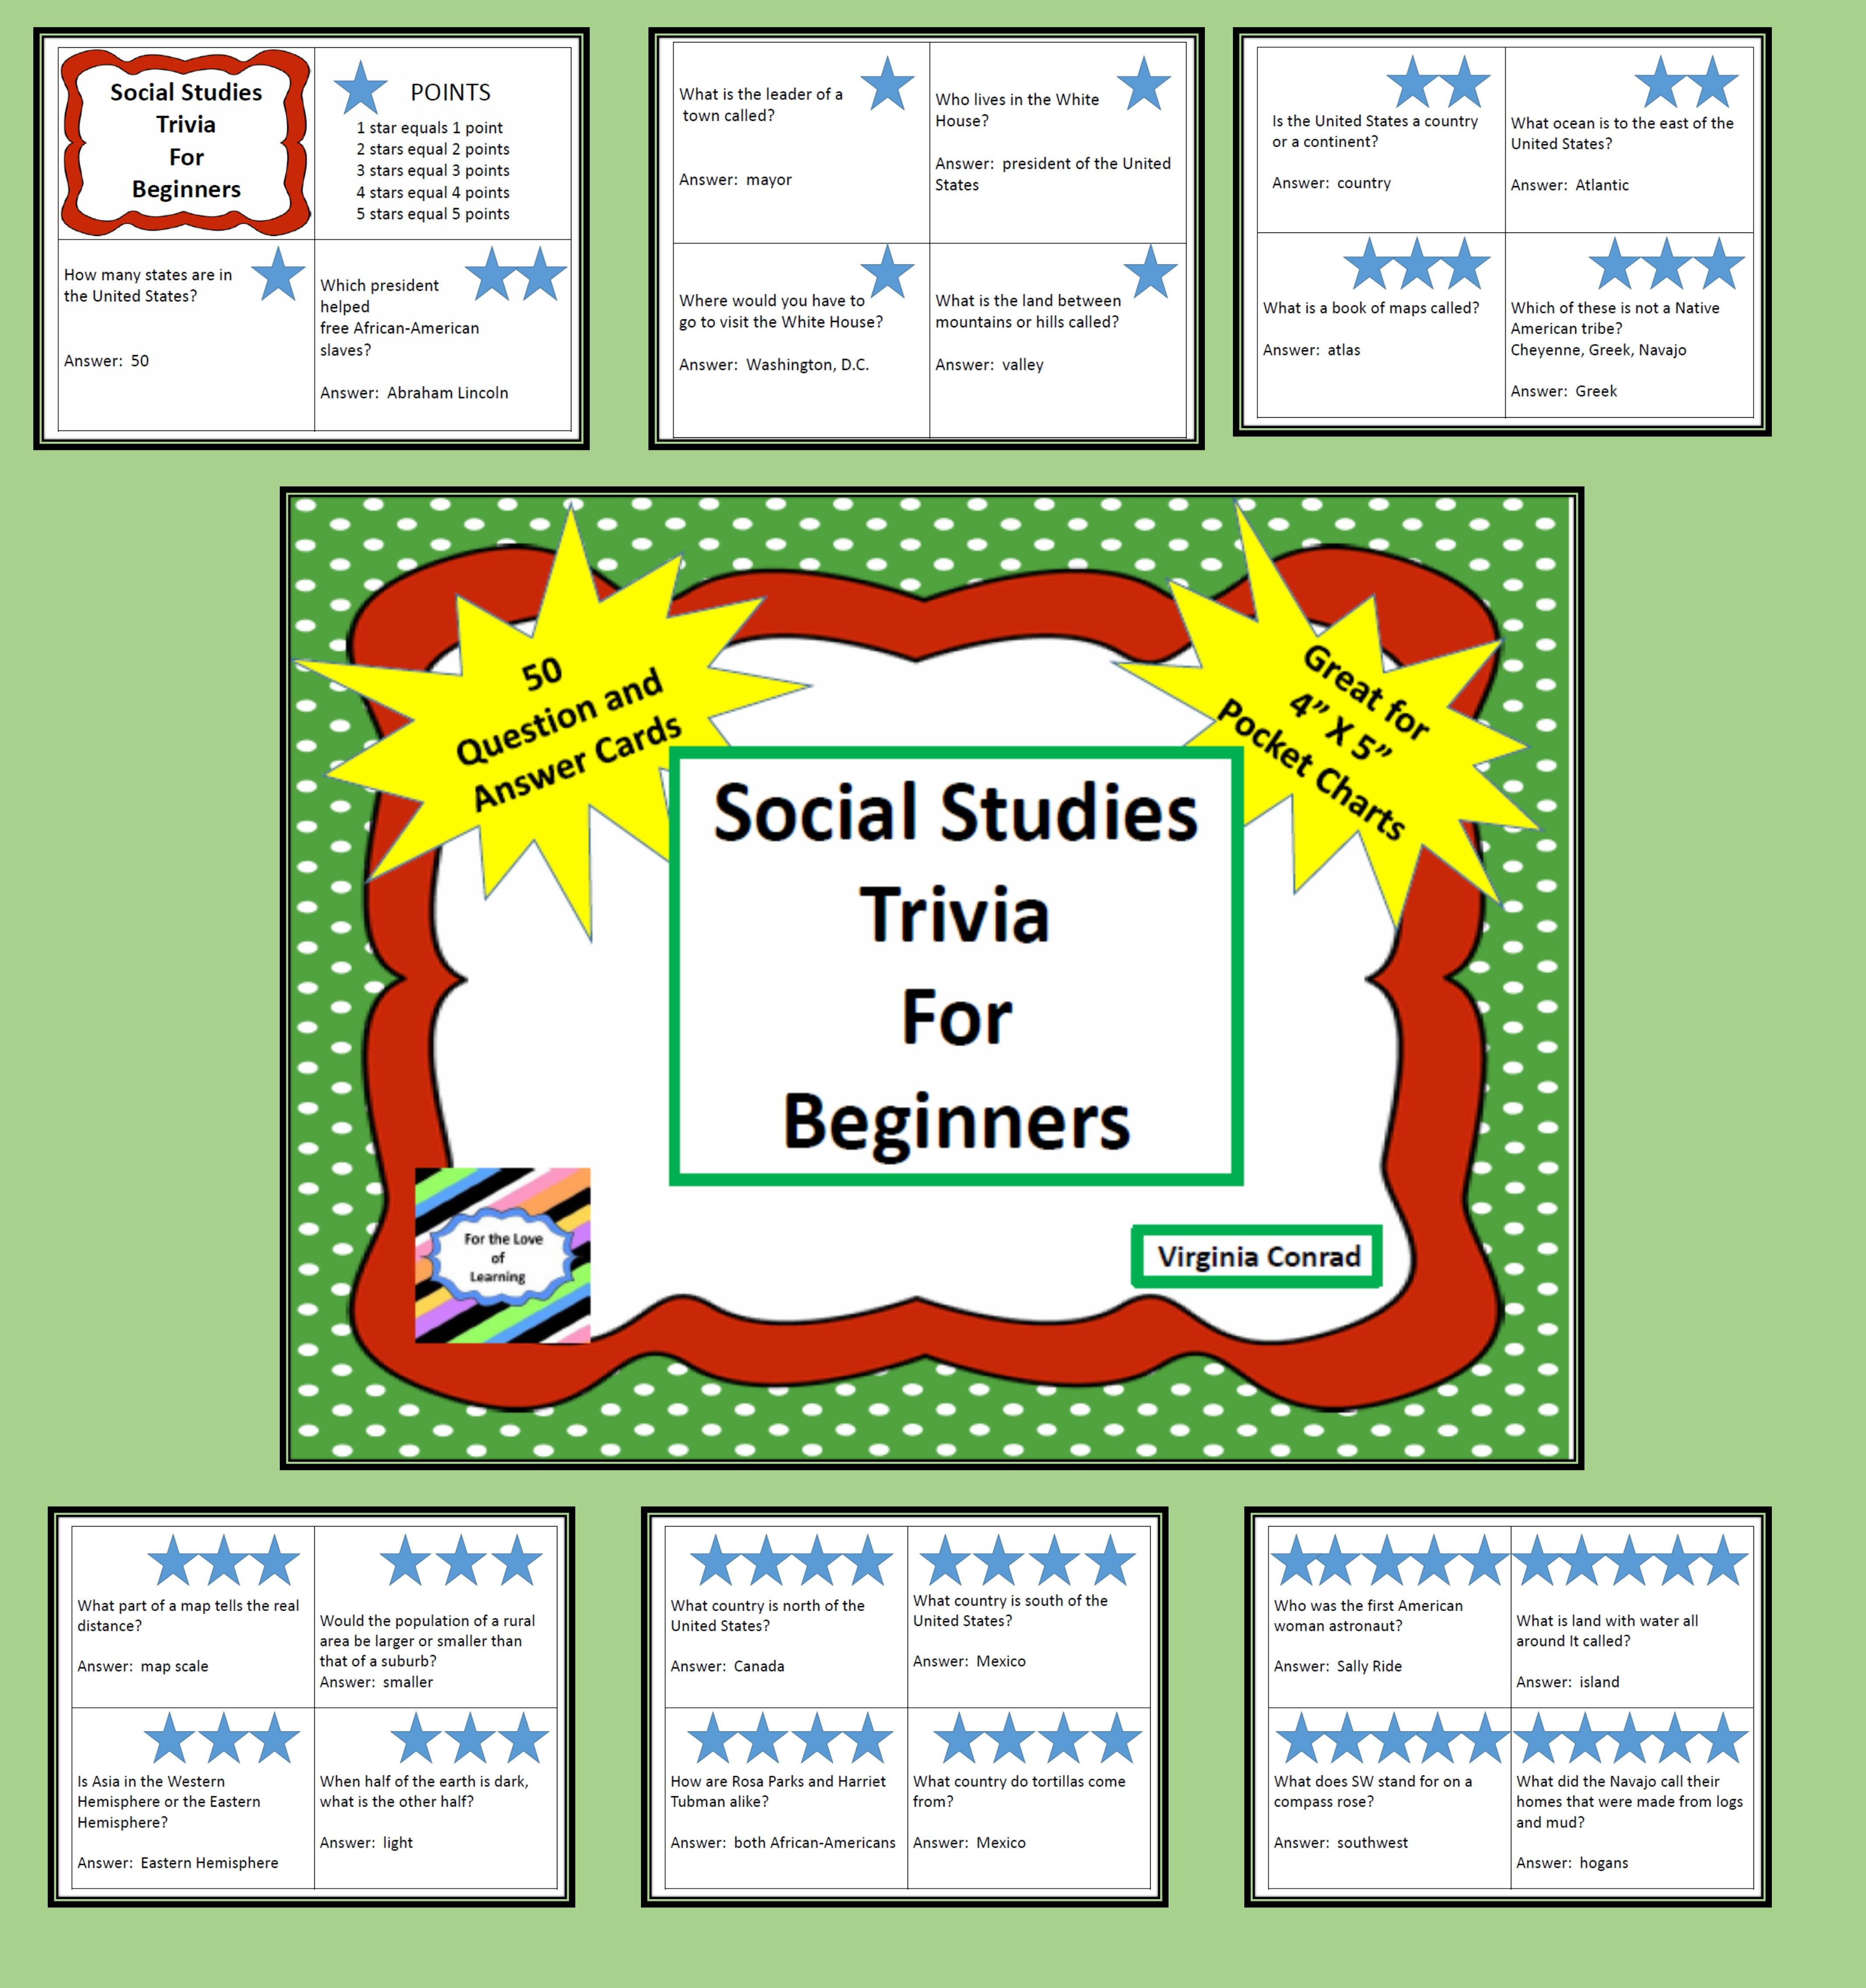 social studies trivia for beginners question and answer cards this set of 50 question and answer cards will get kids thinking about social studies the number of stars on each card indicates the number of points